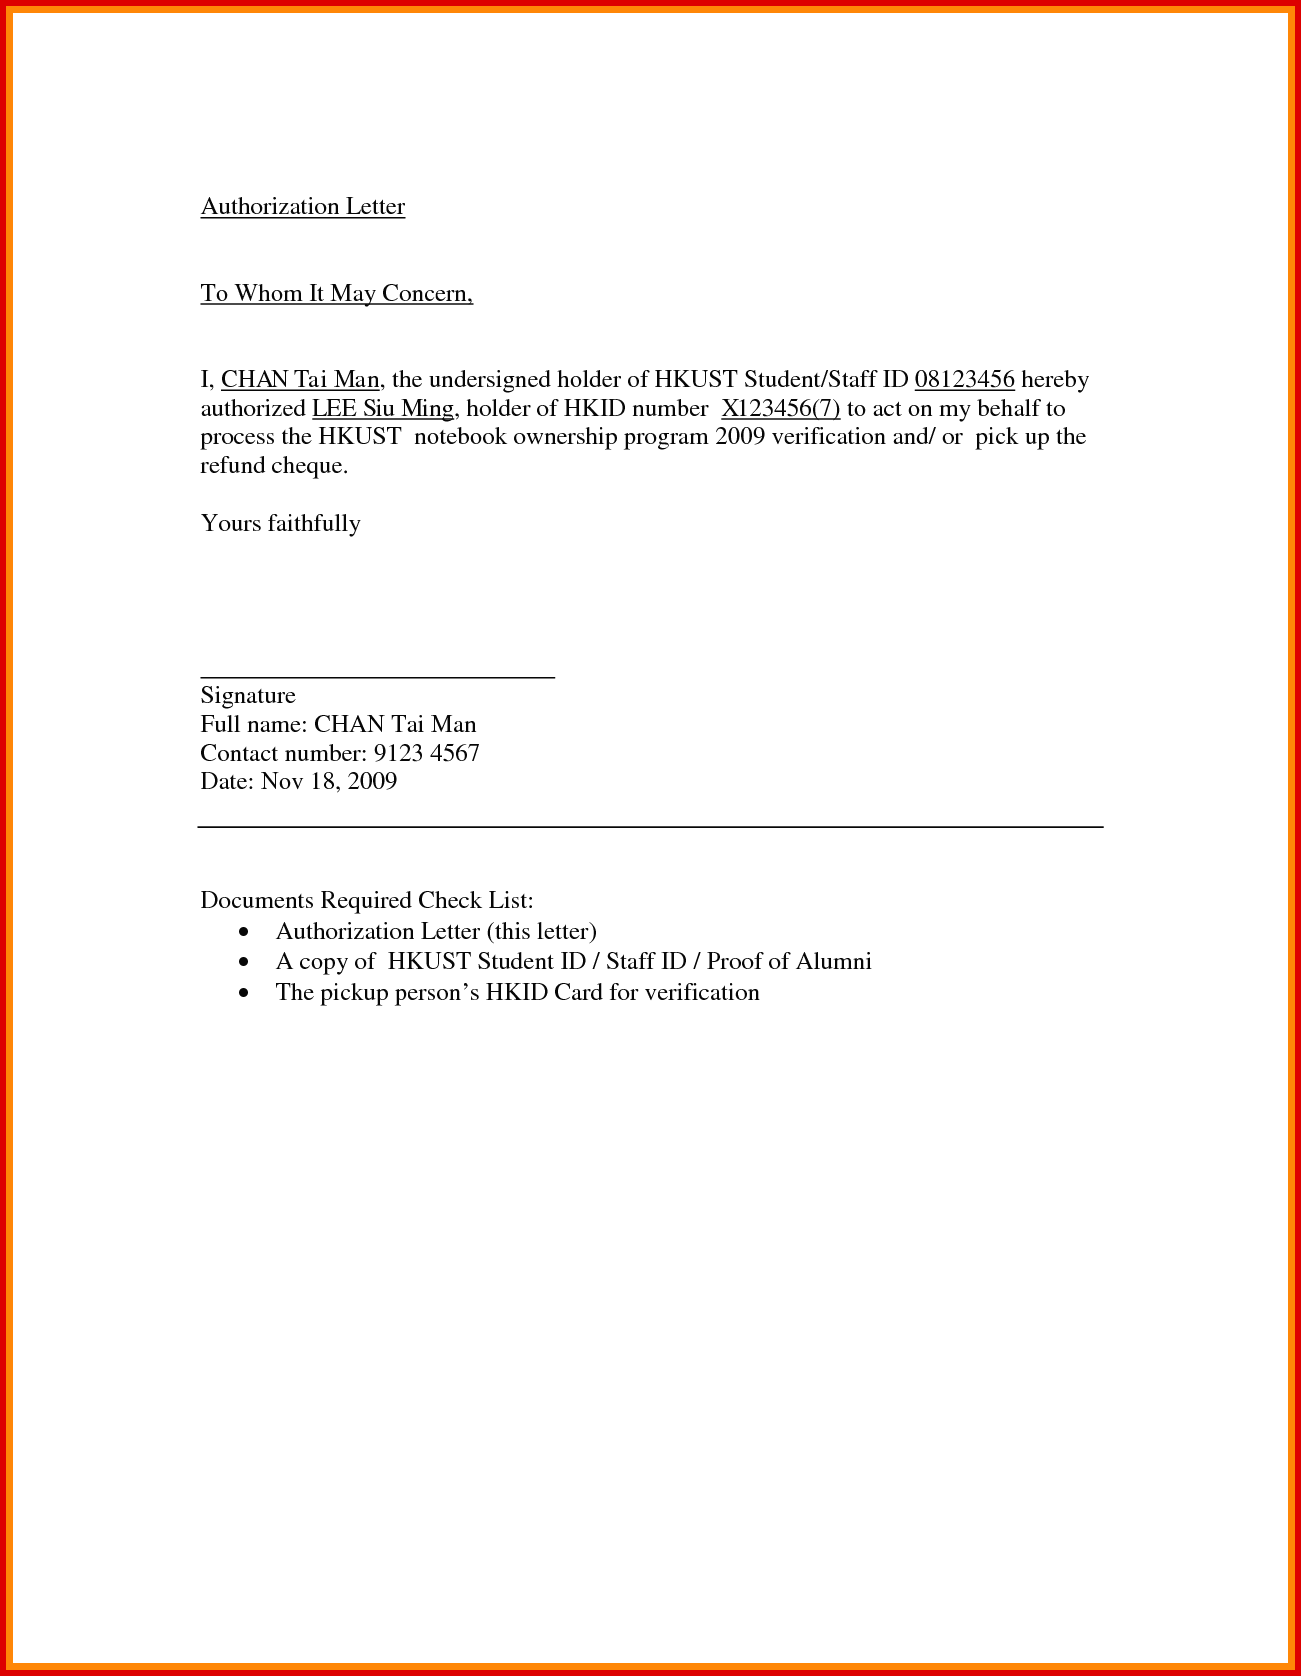 Sample Authorization Letter to Pick up Documents